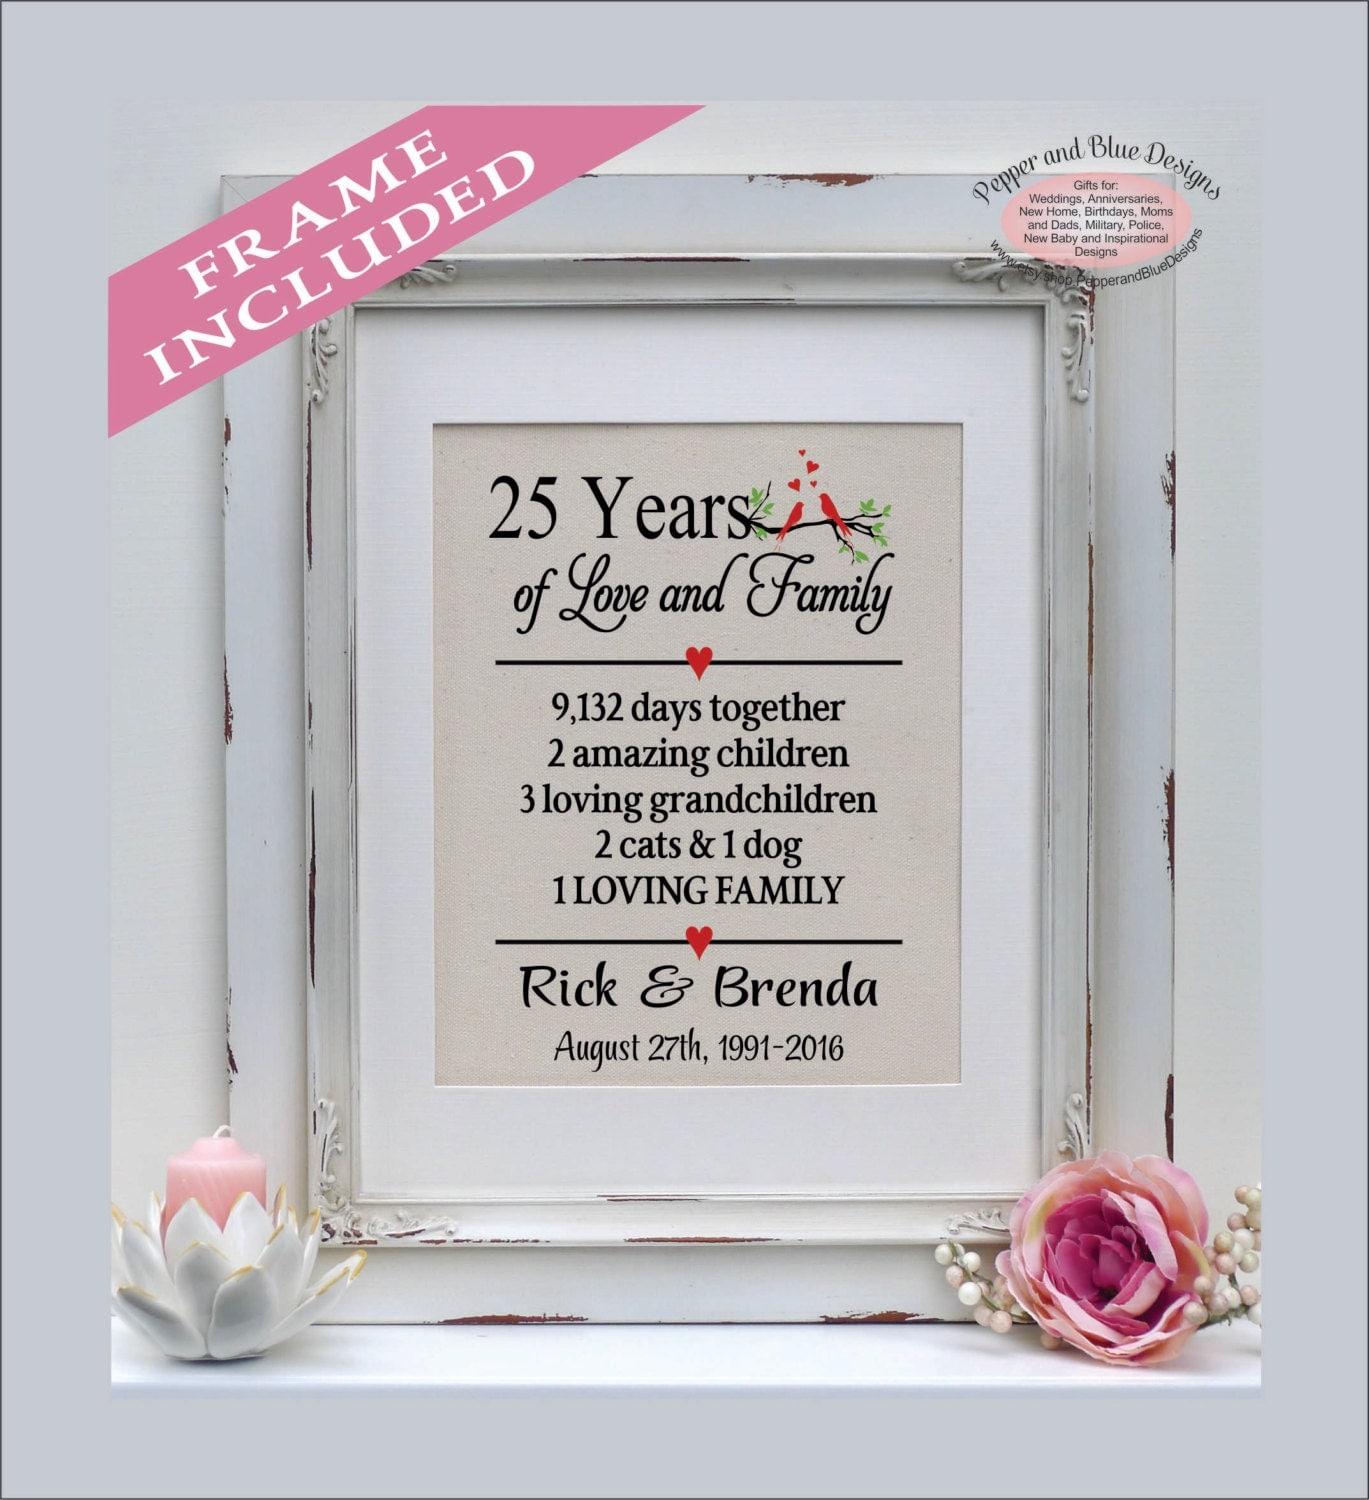 13th Wedding Anniversary Gift Ideas For Her: 25th Anniversary Gift 25 Years 25 Year Anniversary